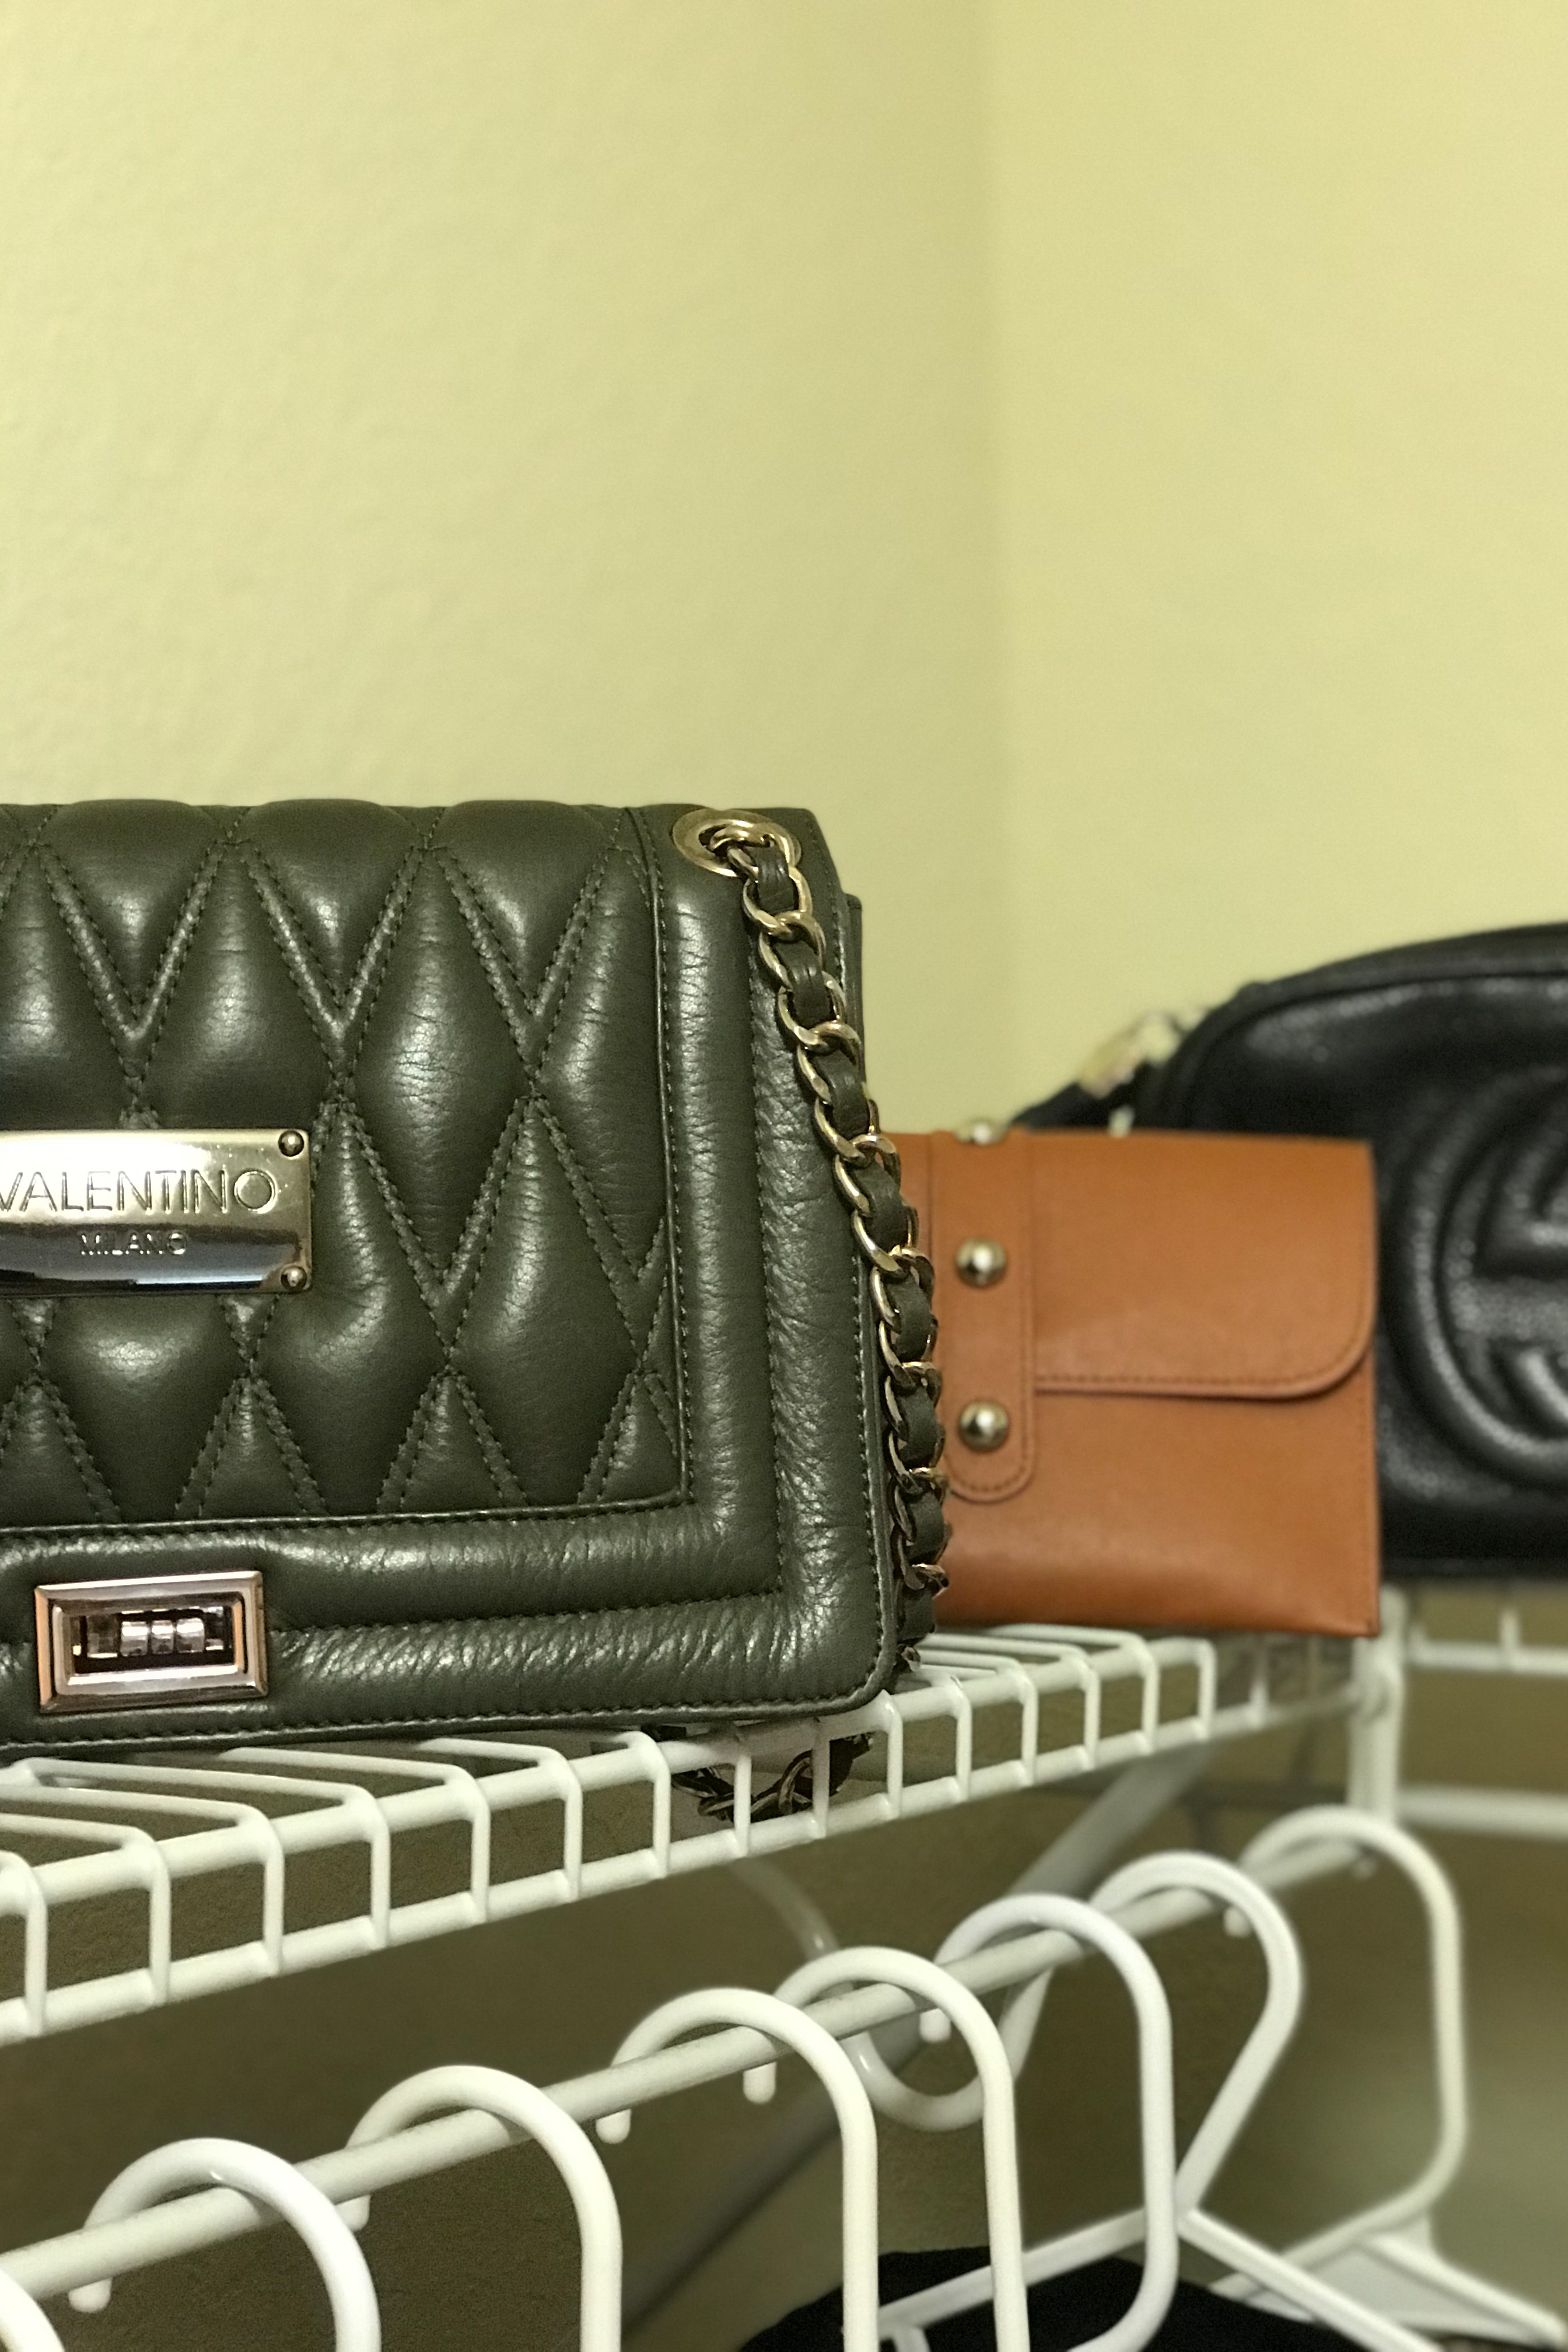 Selection of handbags and belt purses bags by Valentino , Gucci, Prad and Misspap